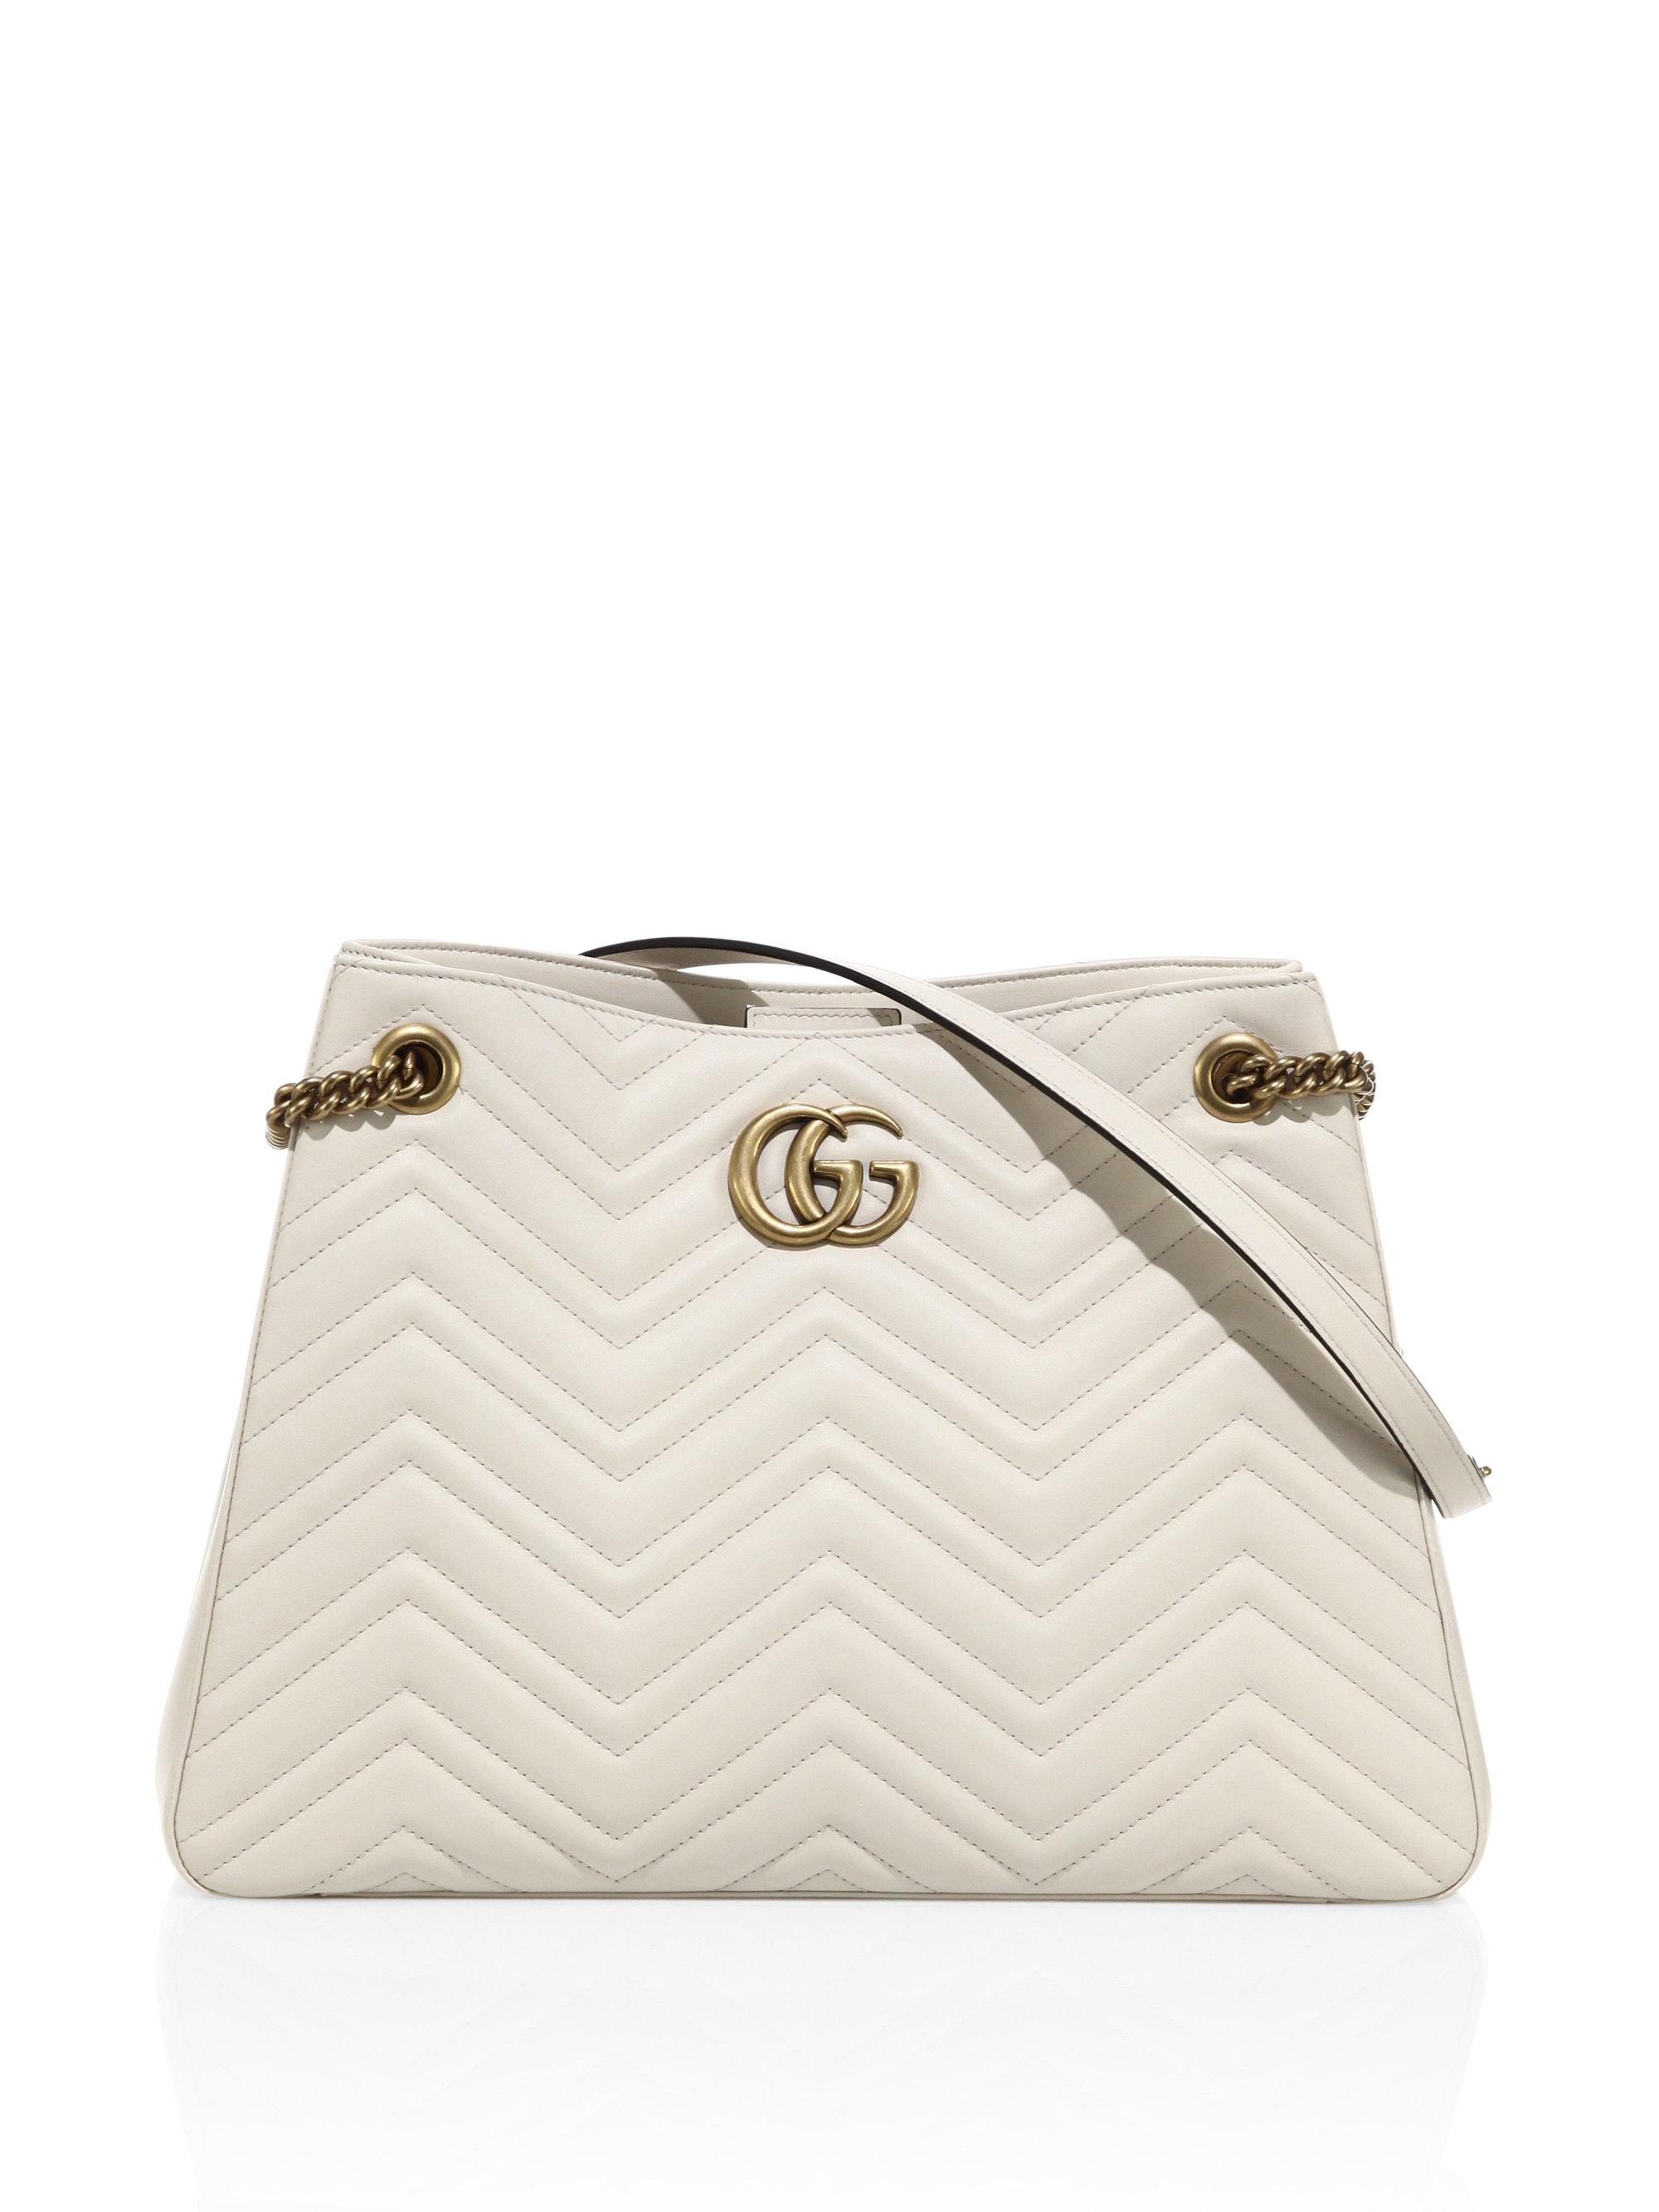 a4d17adf4f4 Lyst - Gucci Gg Marmont Matelasse Leather Shoulder Bag in White